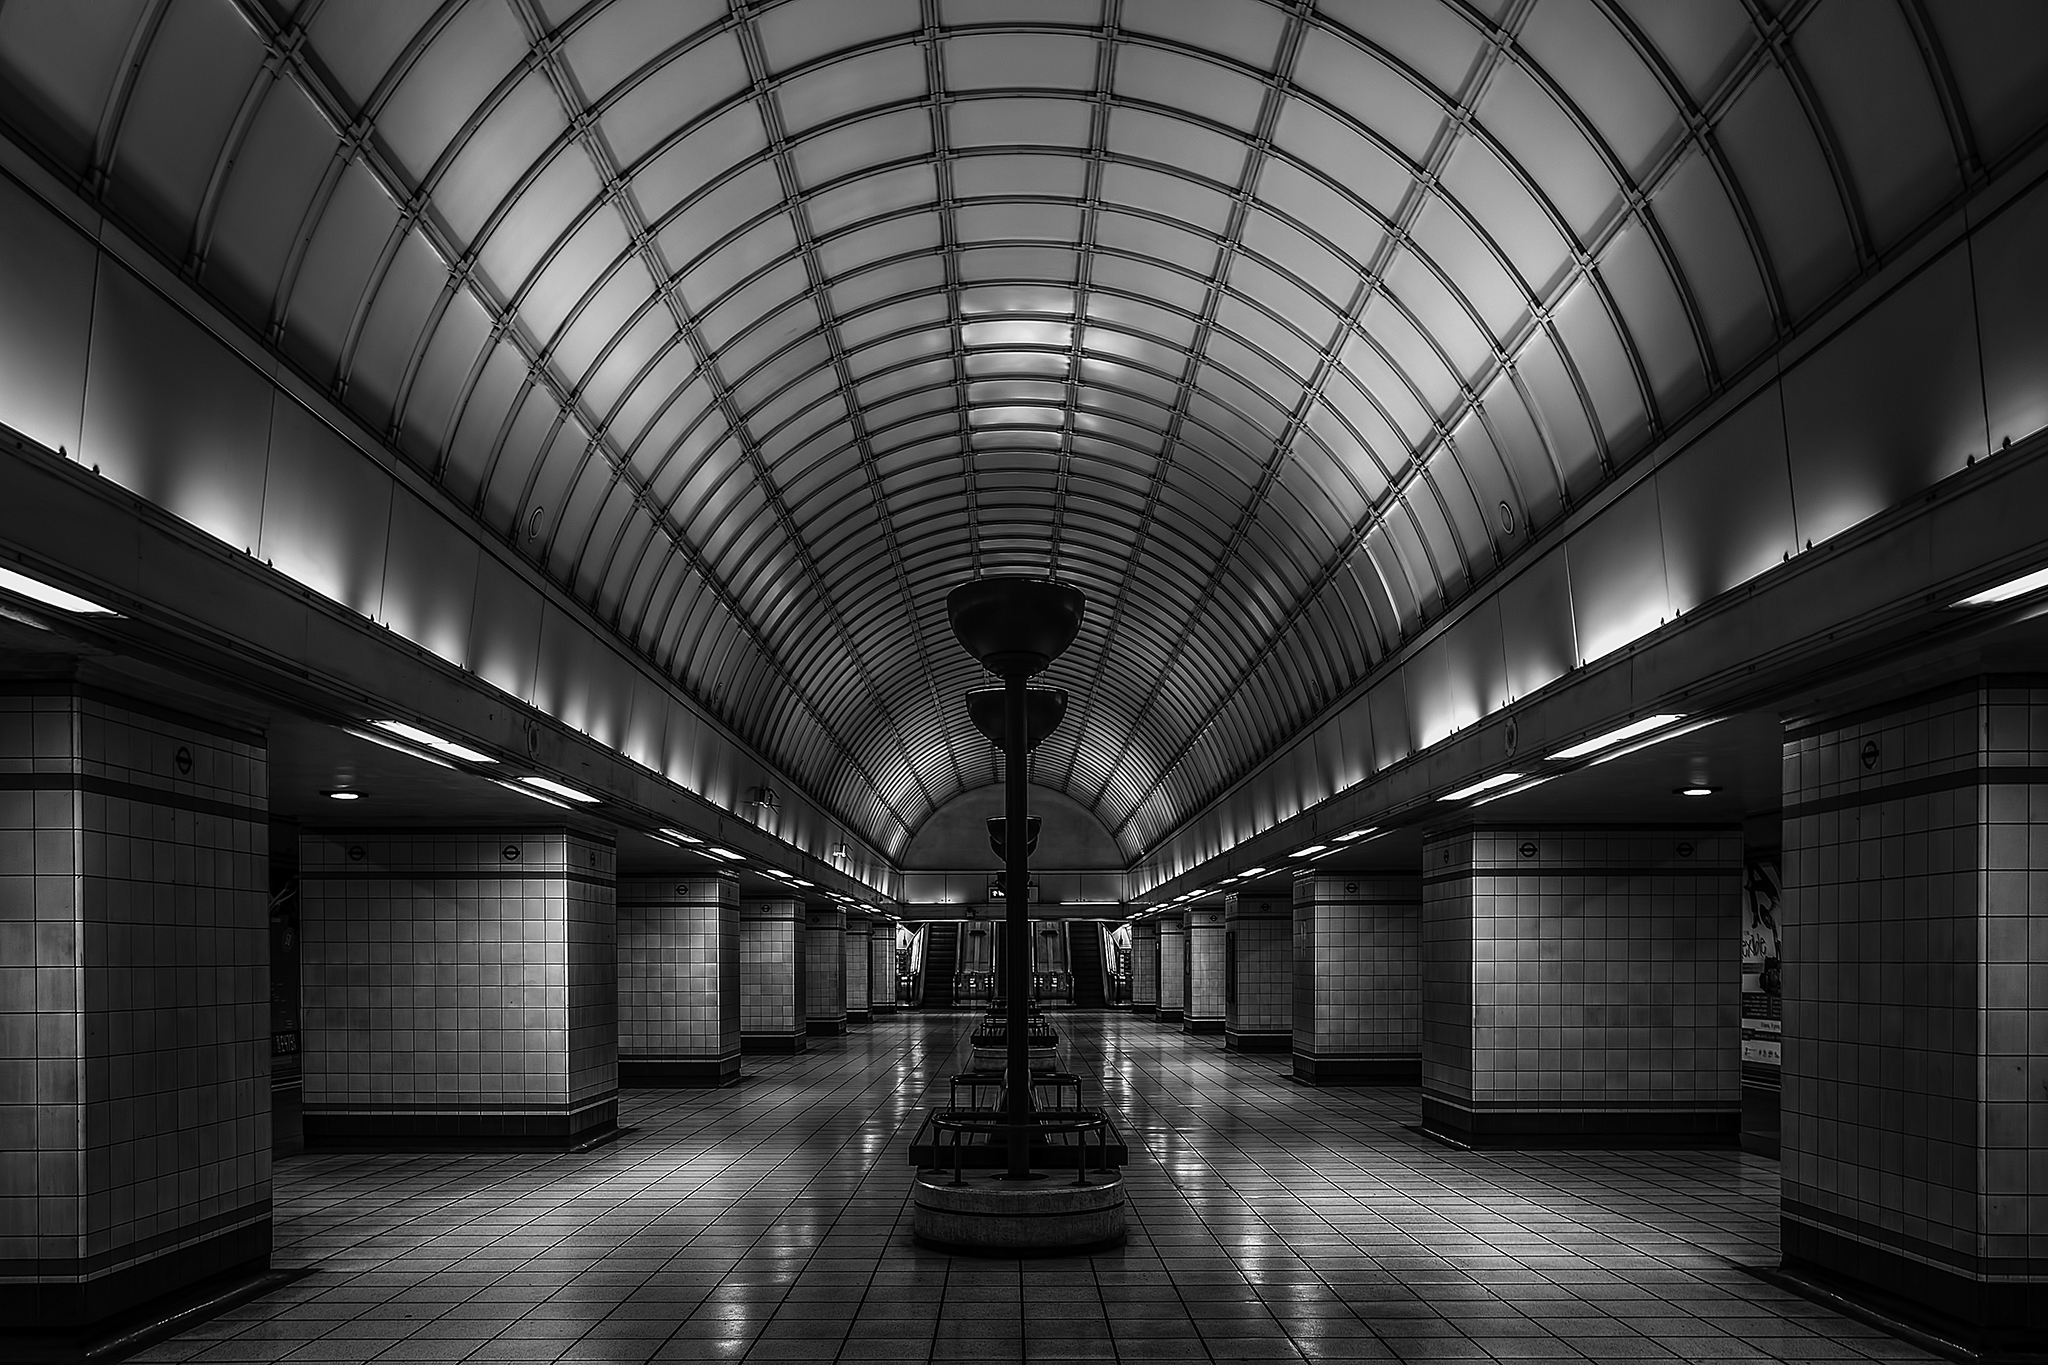 The Concourse at Gants Hill Tube Station, United Kingdom